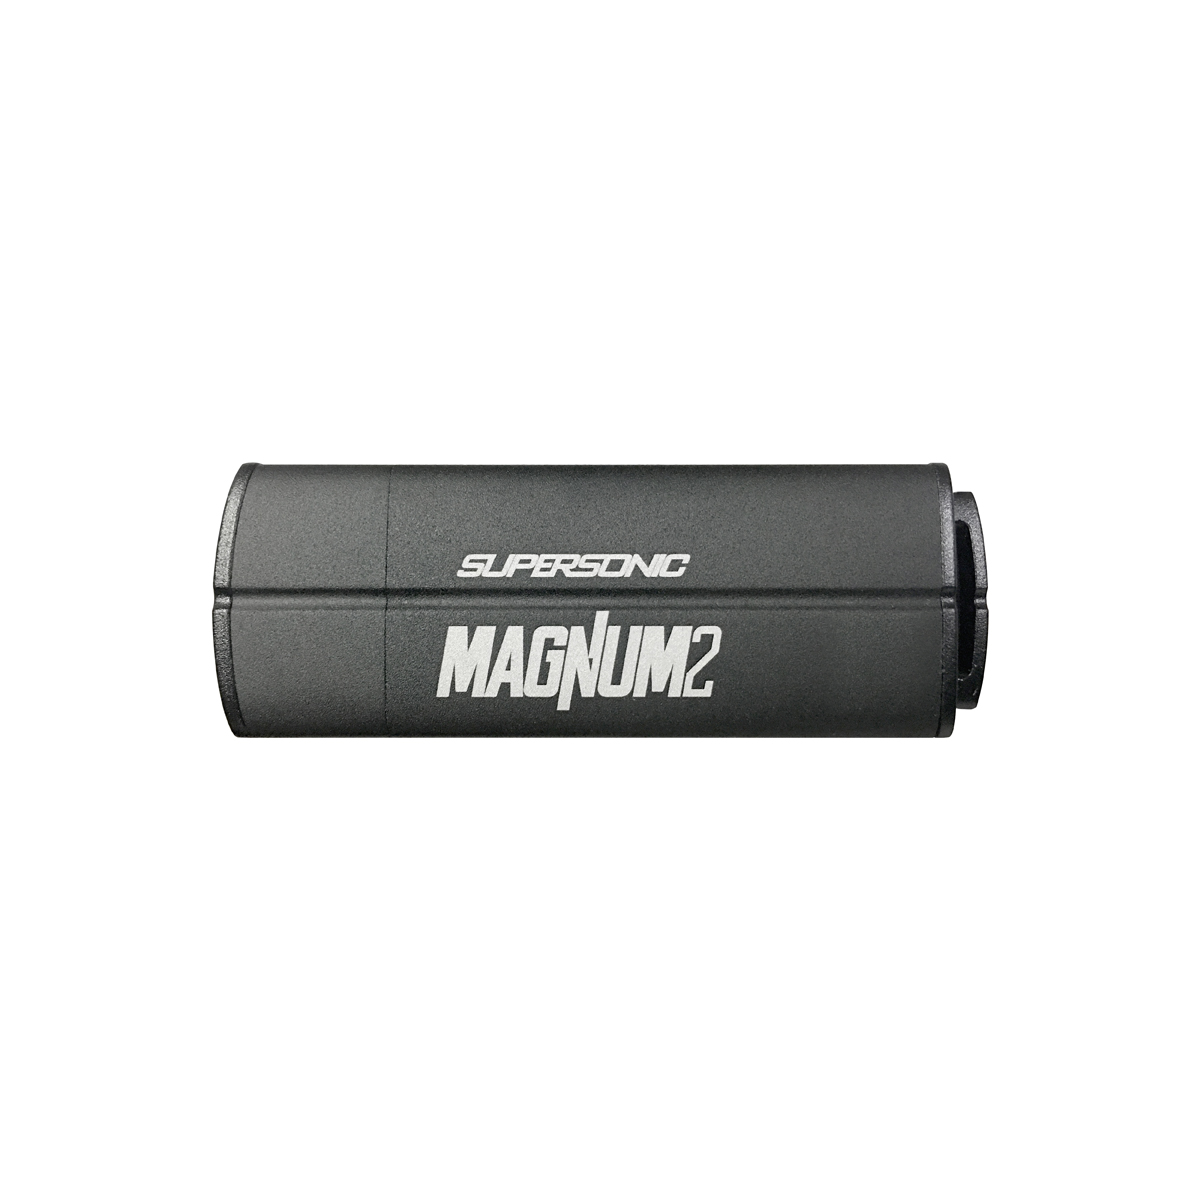 256GB Patriot Supersonic Magnum 2 USB 3.0 400/300MBs